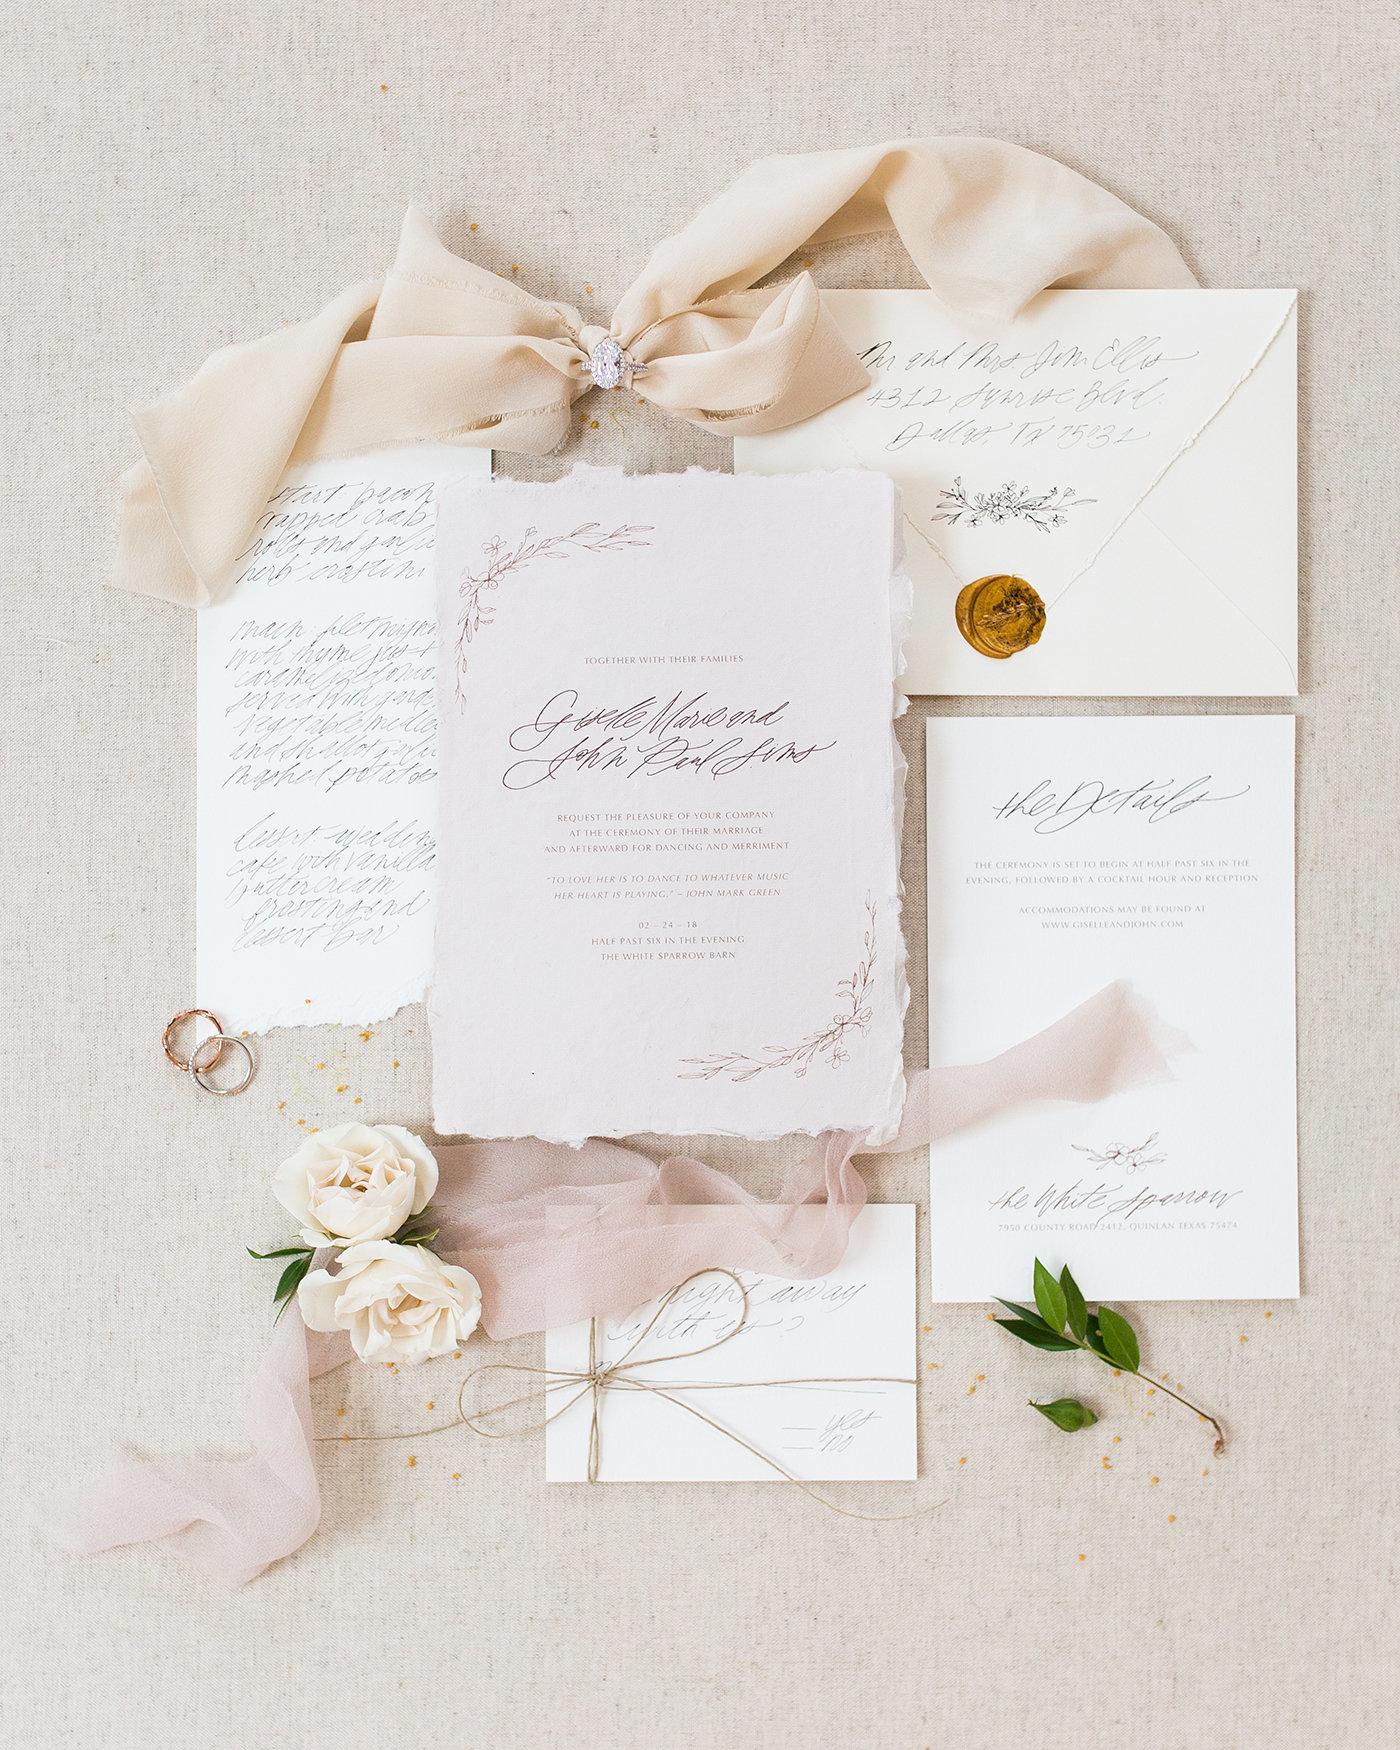 Sarah Ann Design - Wedding Invitation and Calligraphy - White Sparrow - Ballet Inspired - 00001